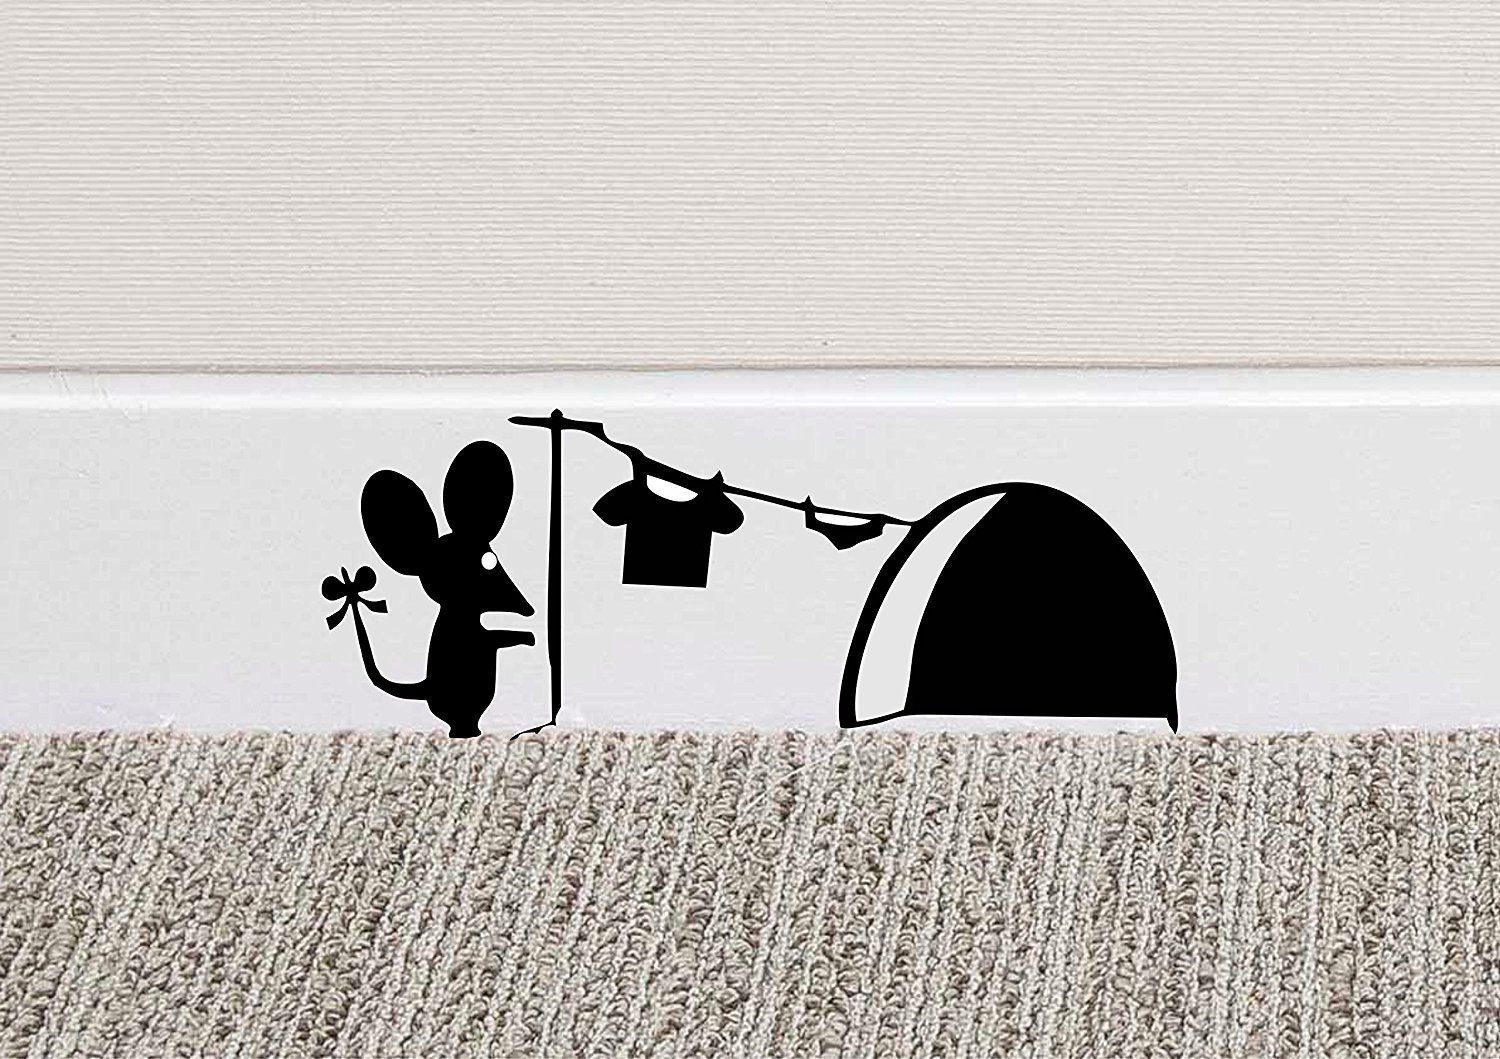 Mouse Hole Mice Wall Sticker DIY Skirting Board Vinyl Sticker Decal Home Decor